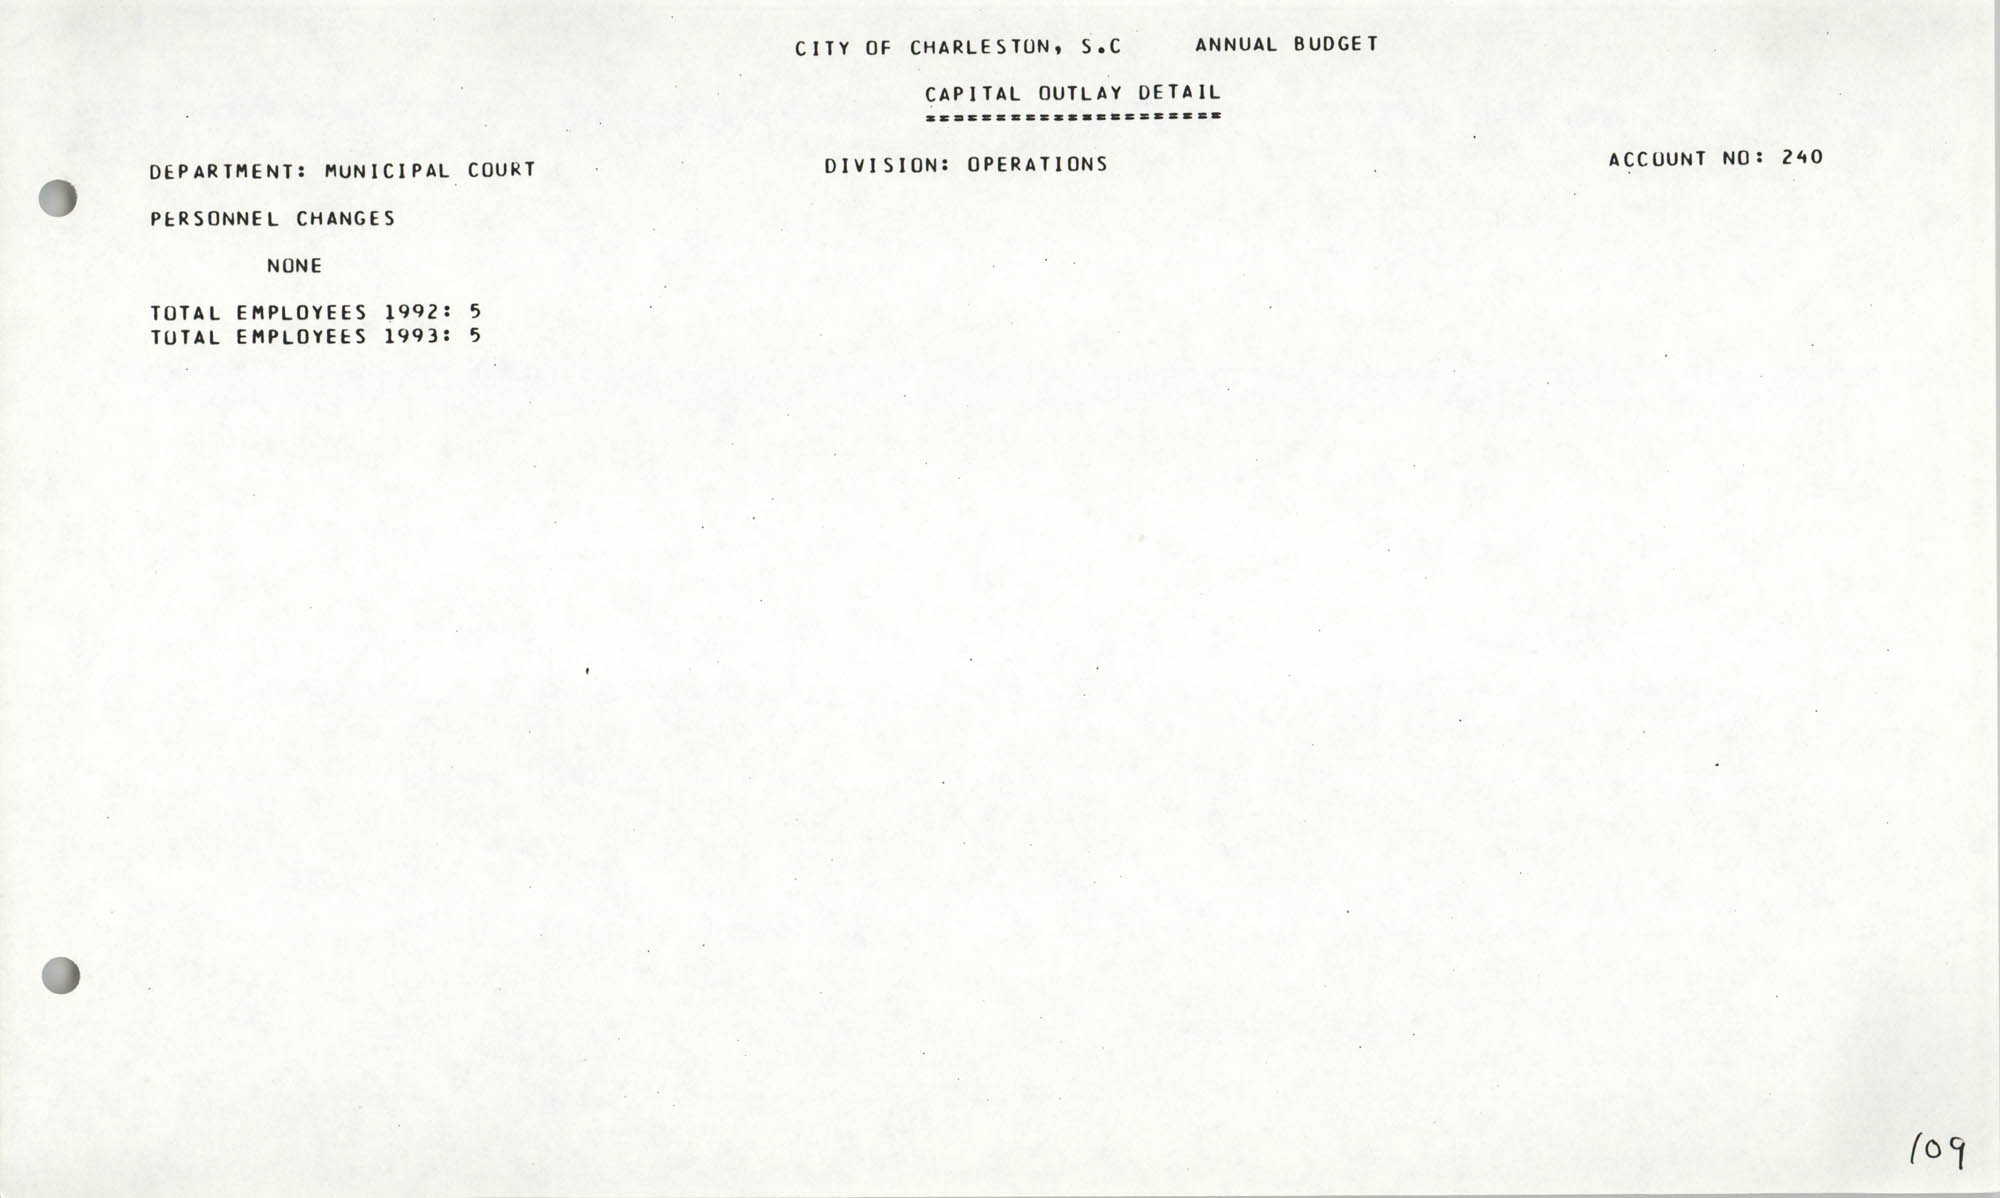 The City Council of Charleston, South Carolina, 1993 Budget, Page 109